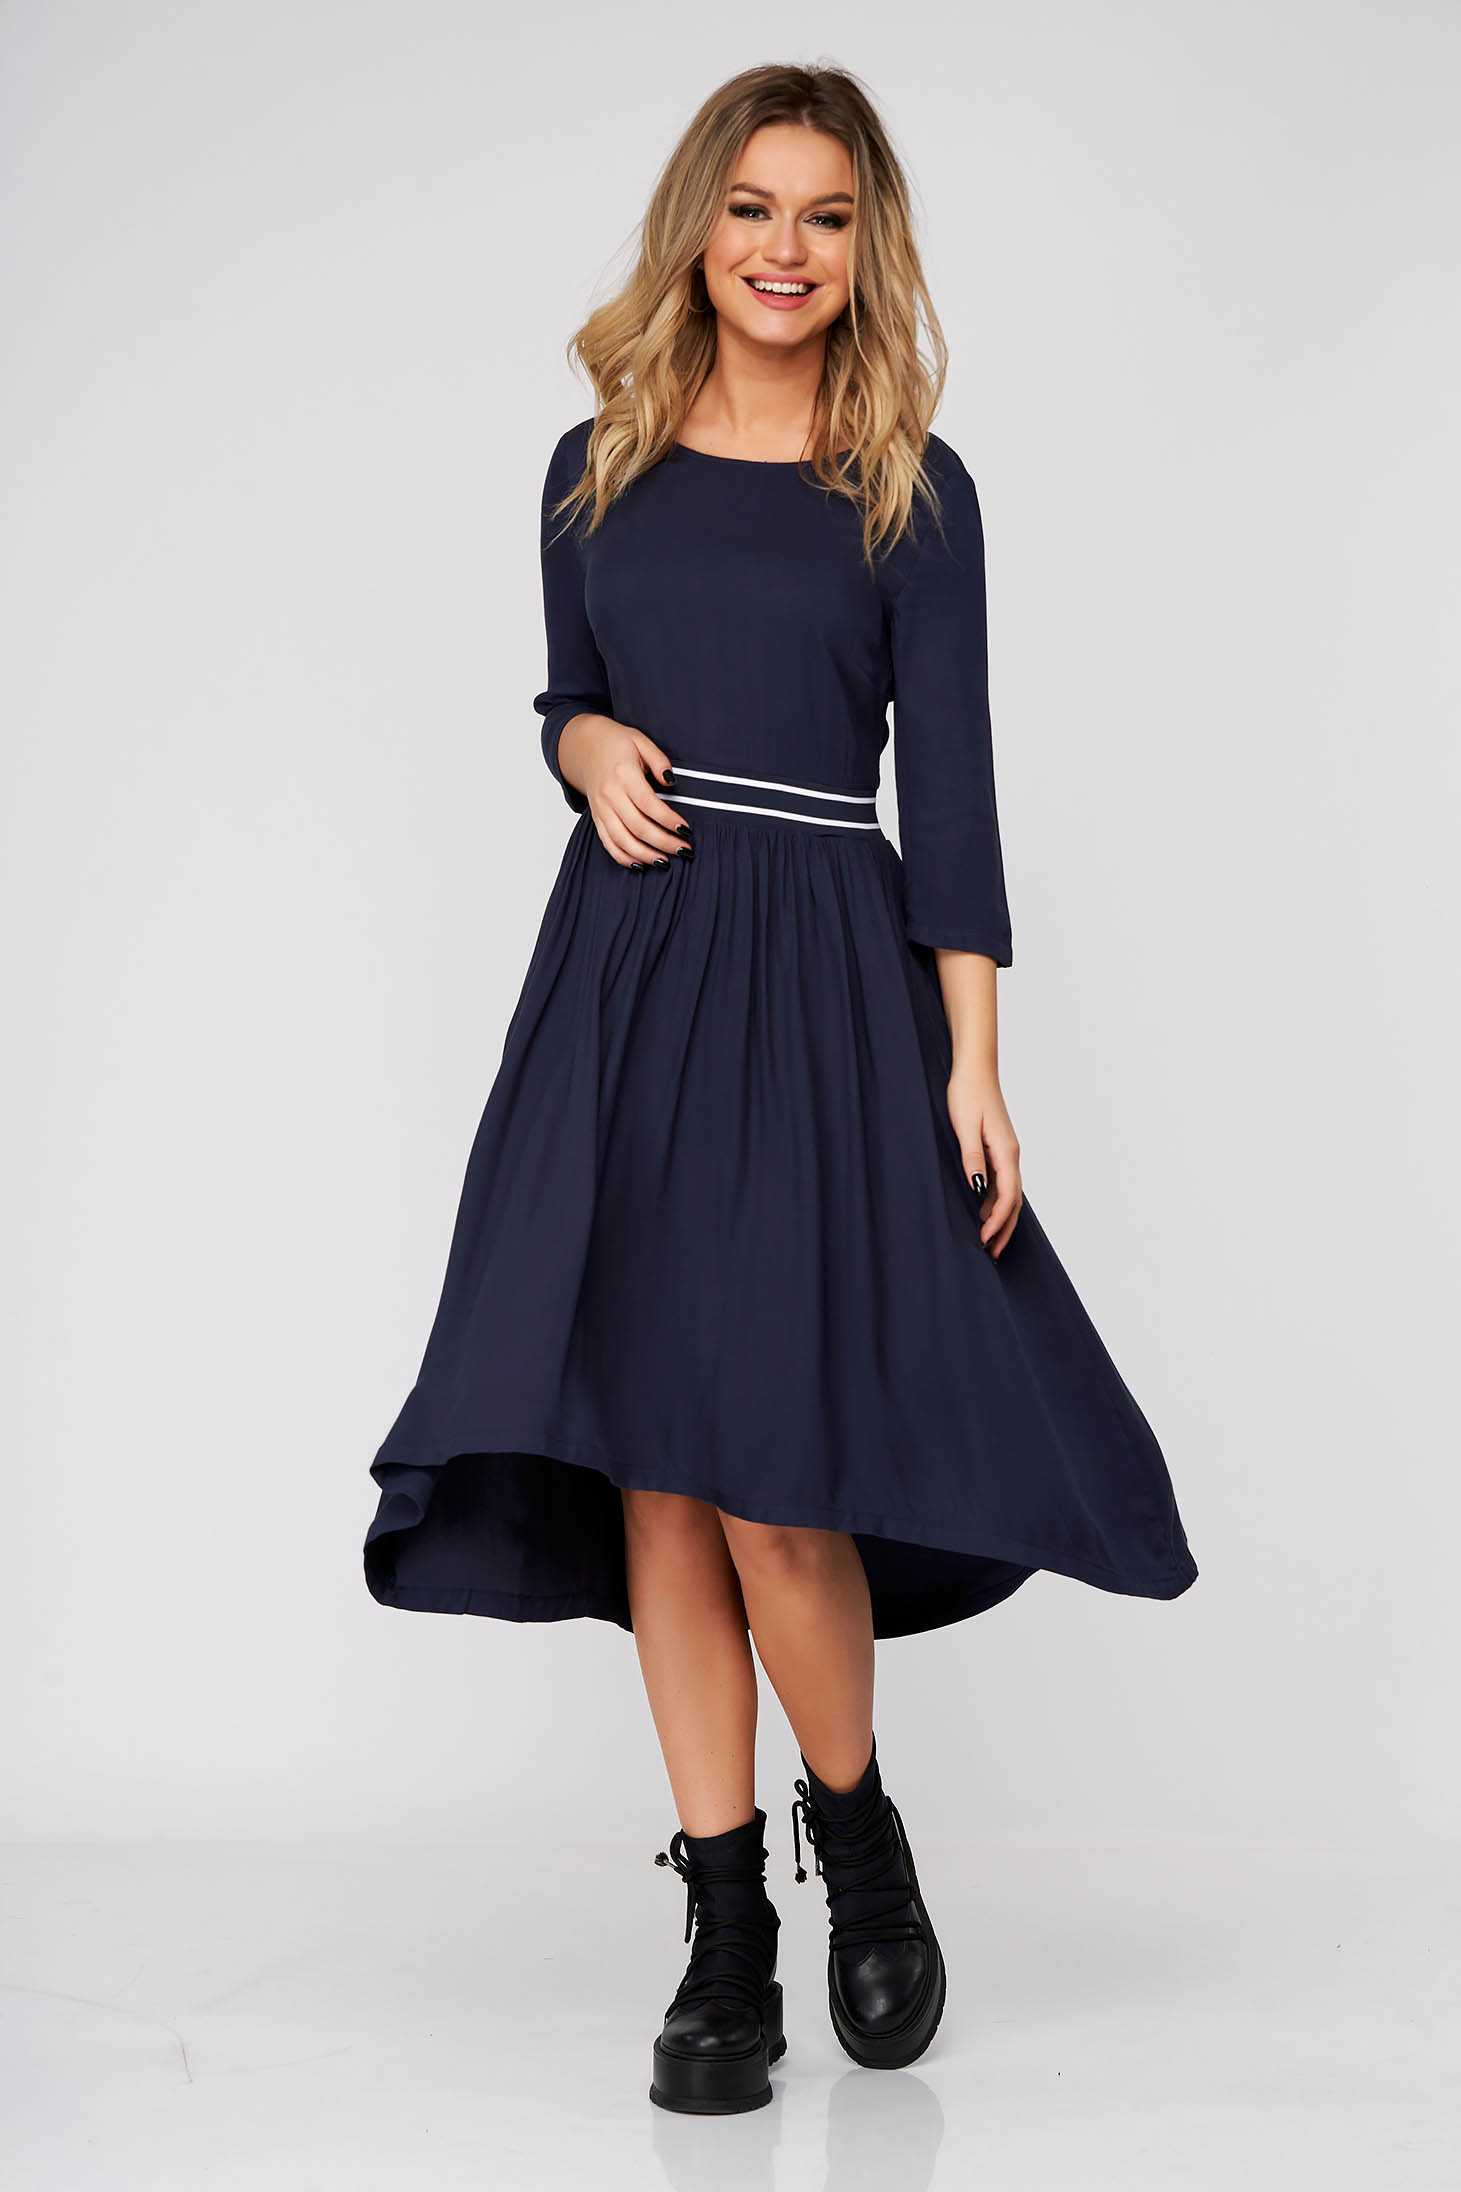 Darkblue dress midi daily asymmetrical cloche with pockets